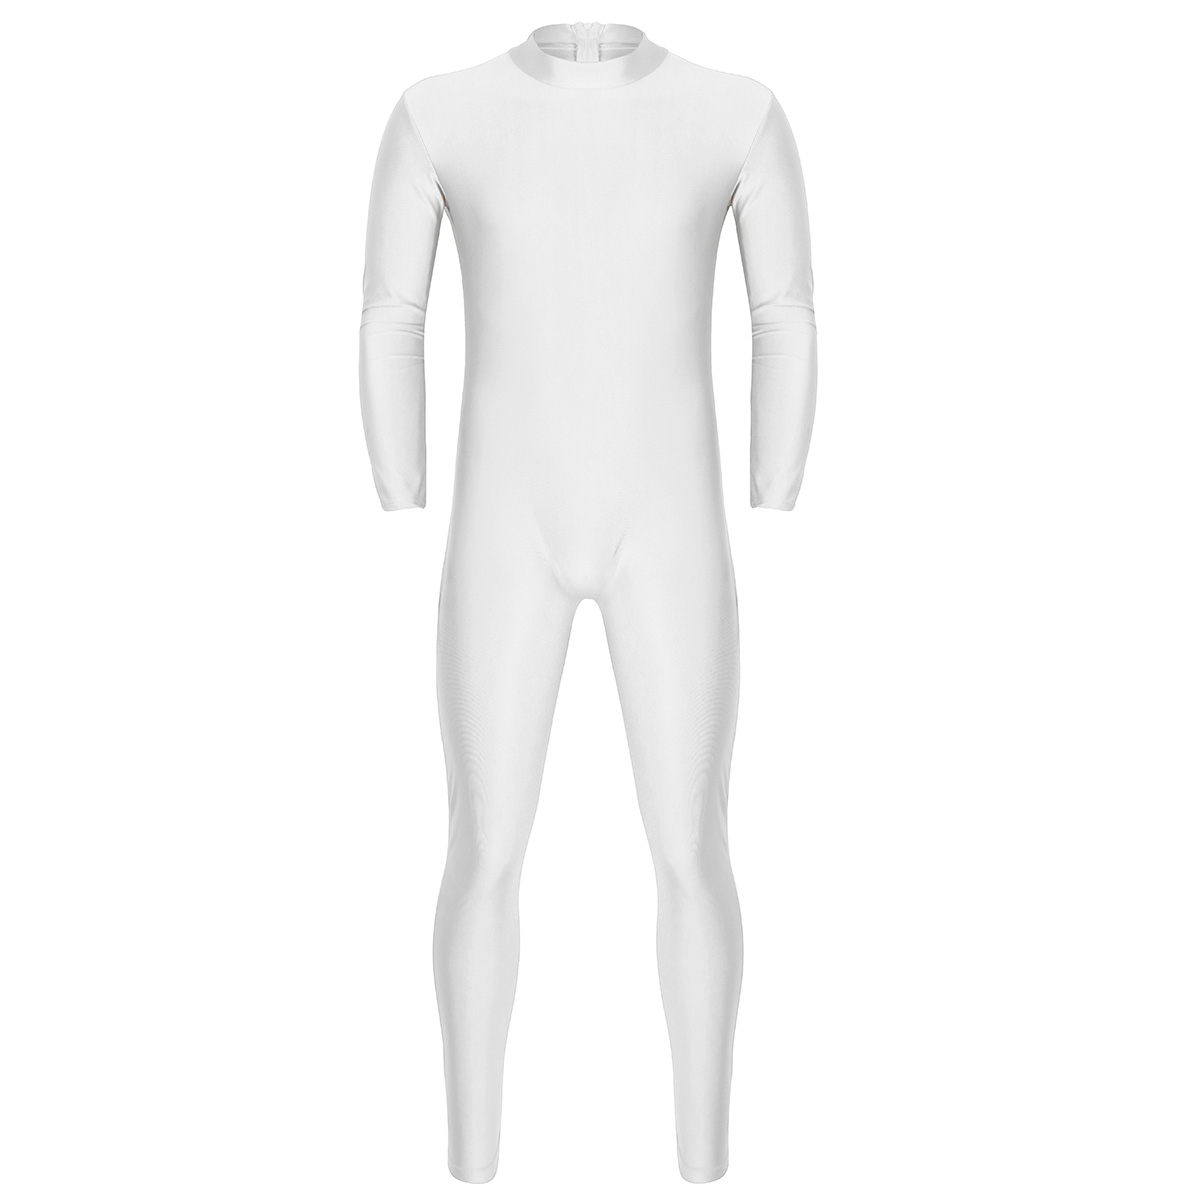 Mens Well Fit One Piece Leotards Long Sleeves Skinny Full-body Catsuit Adult Lycra Dancewear Bodysuit Gymnastics Workout Unitard 24